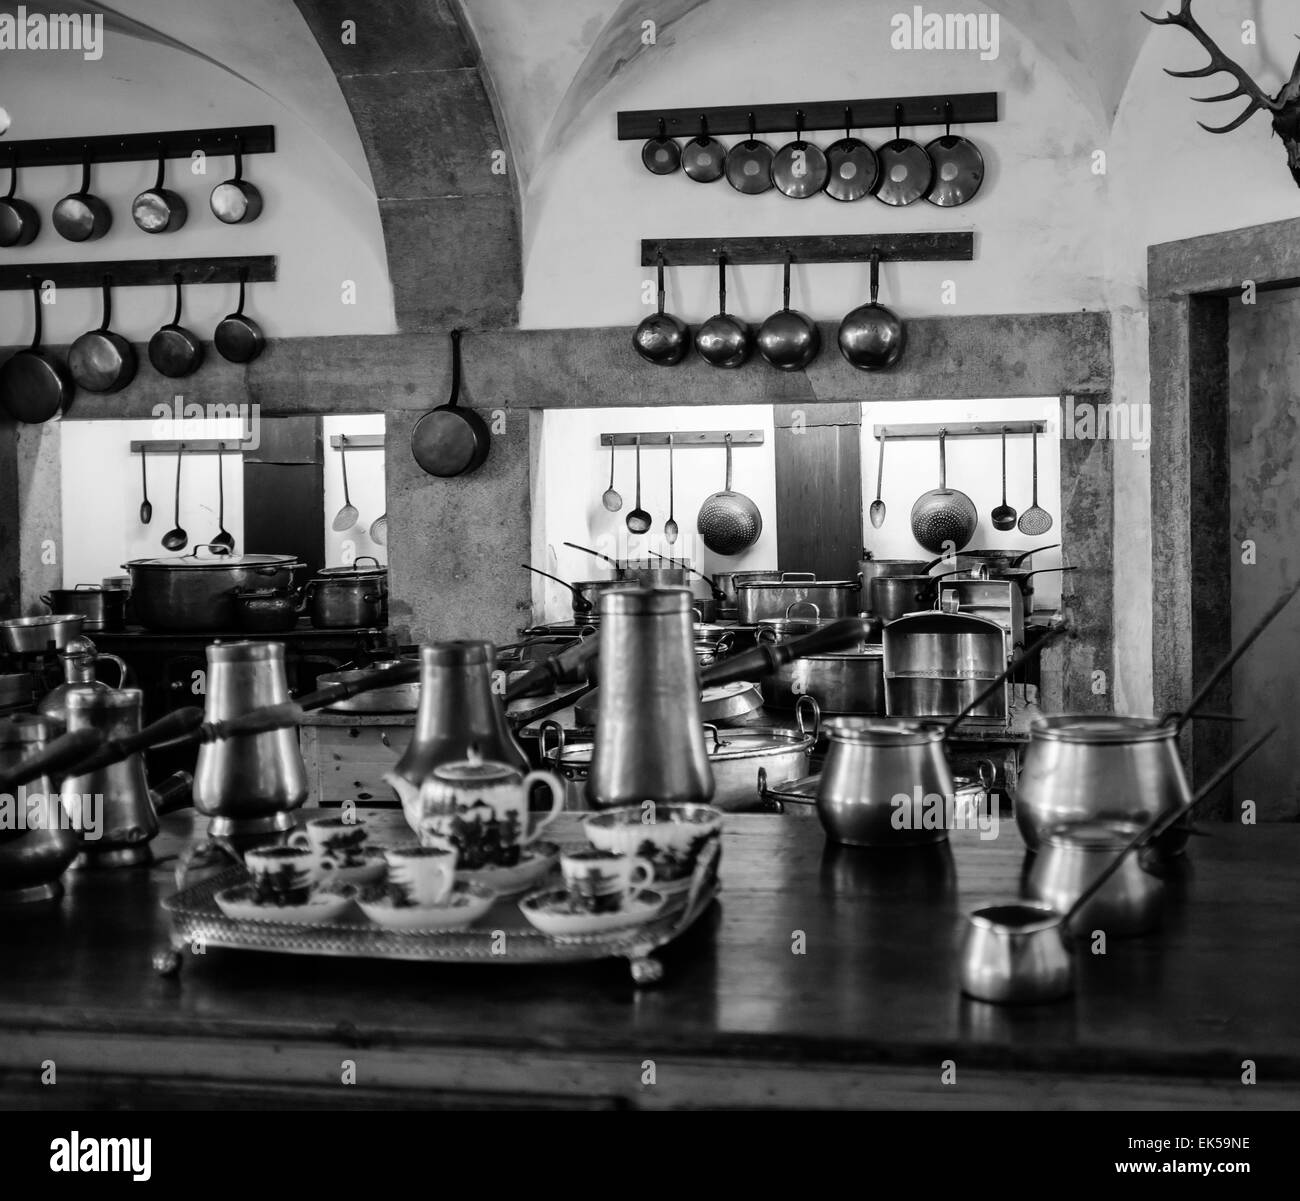 Portugal, Sintra, Pena National Palace (Palàcio Nacional da Pena), 18th century a. C., view of the kitchen - Stock Image